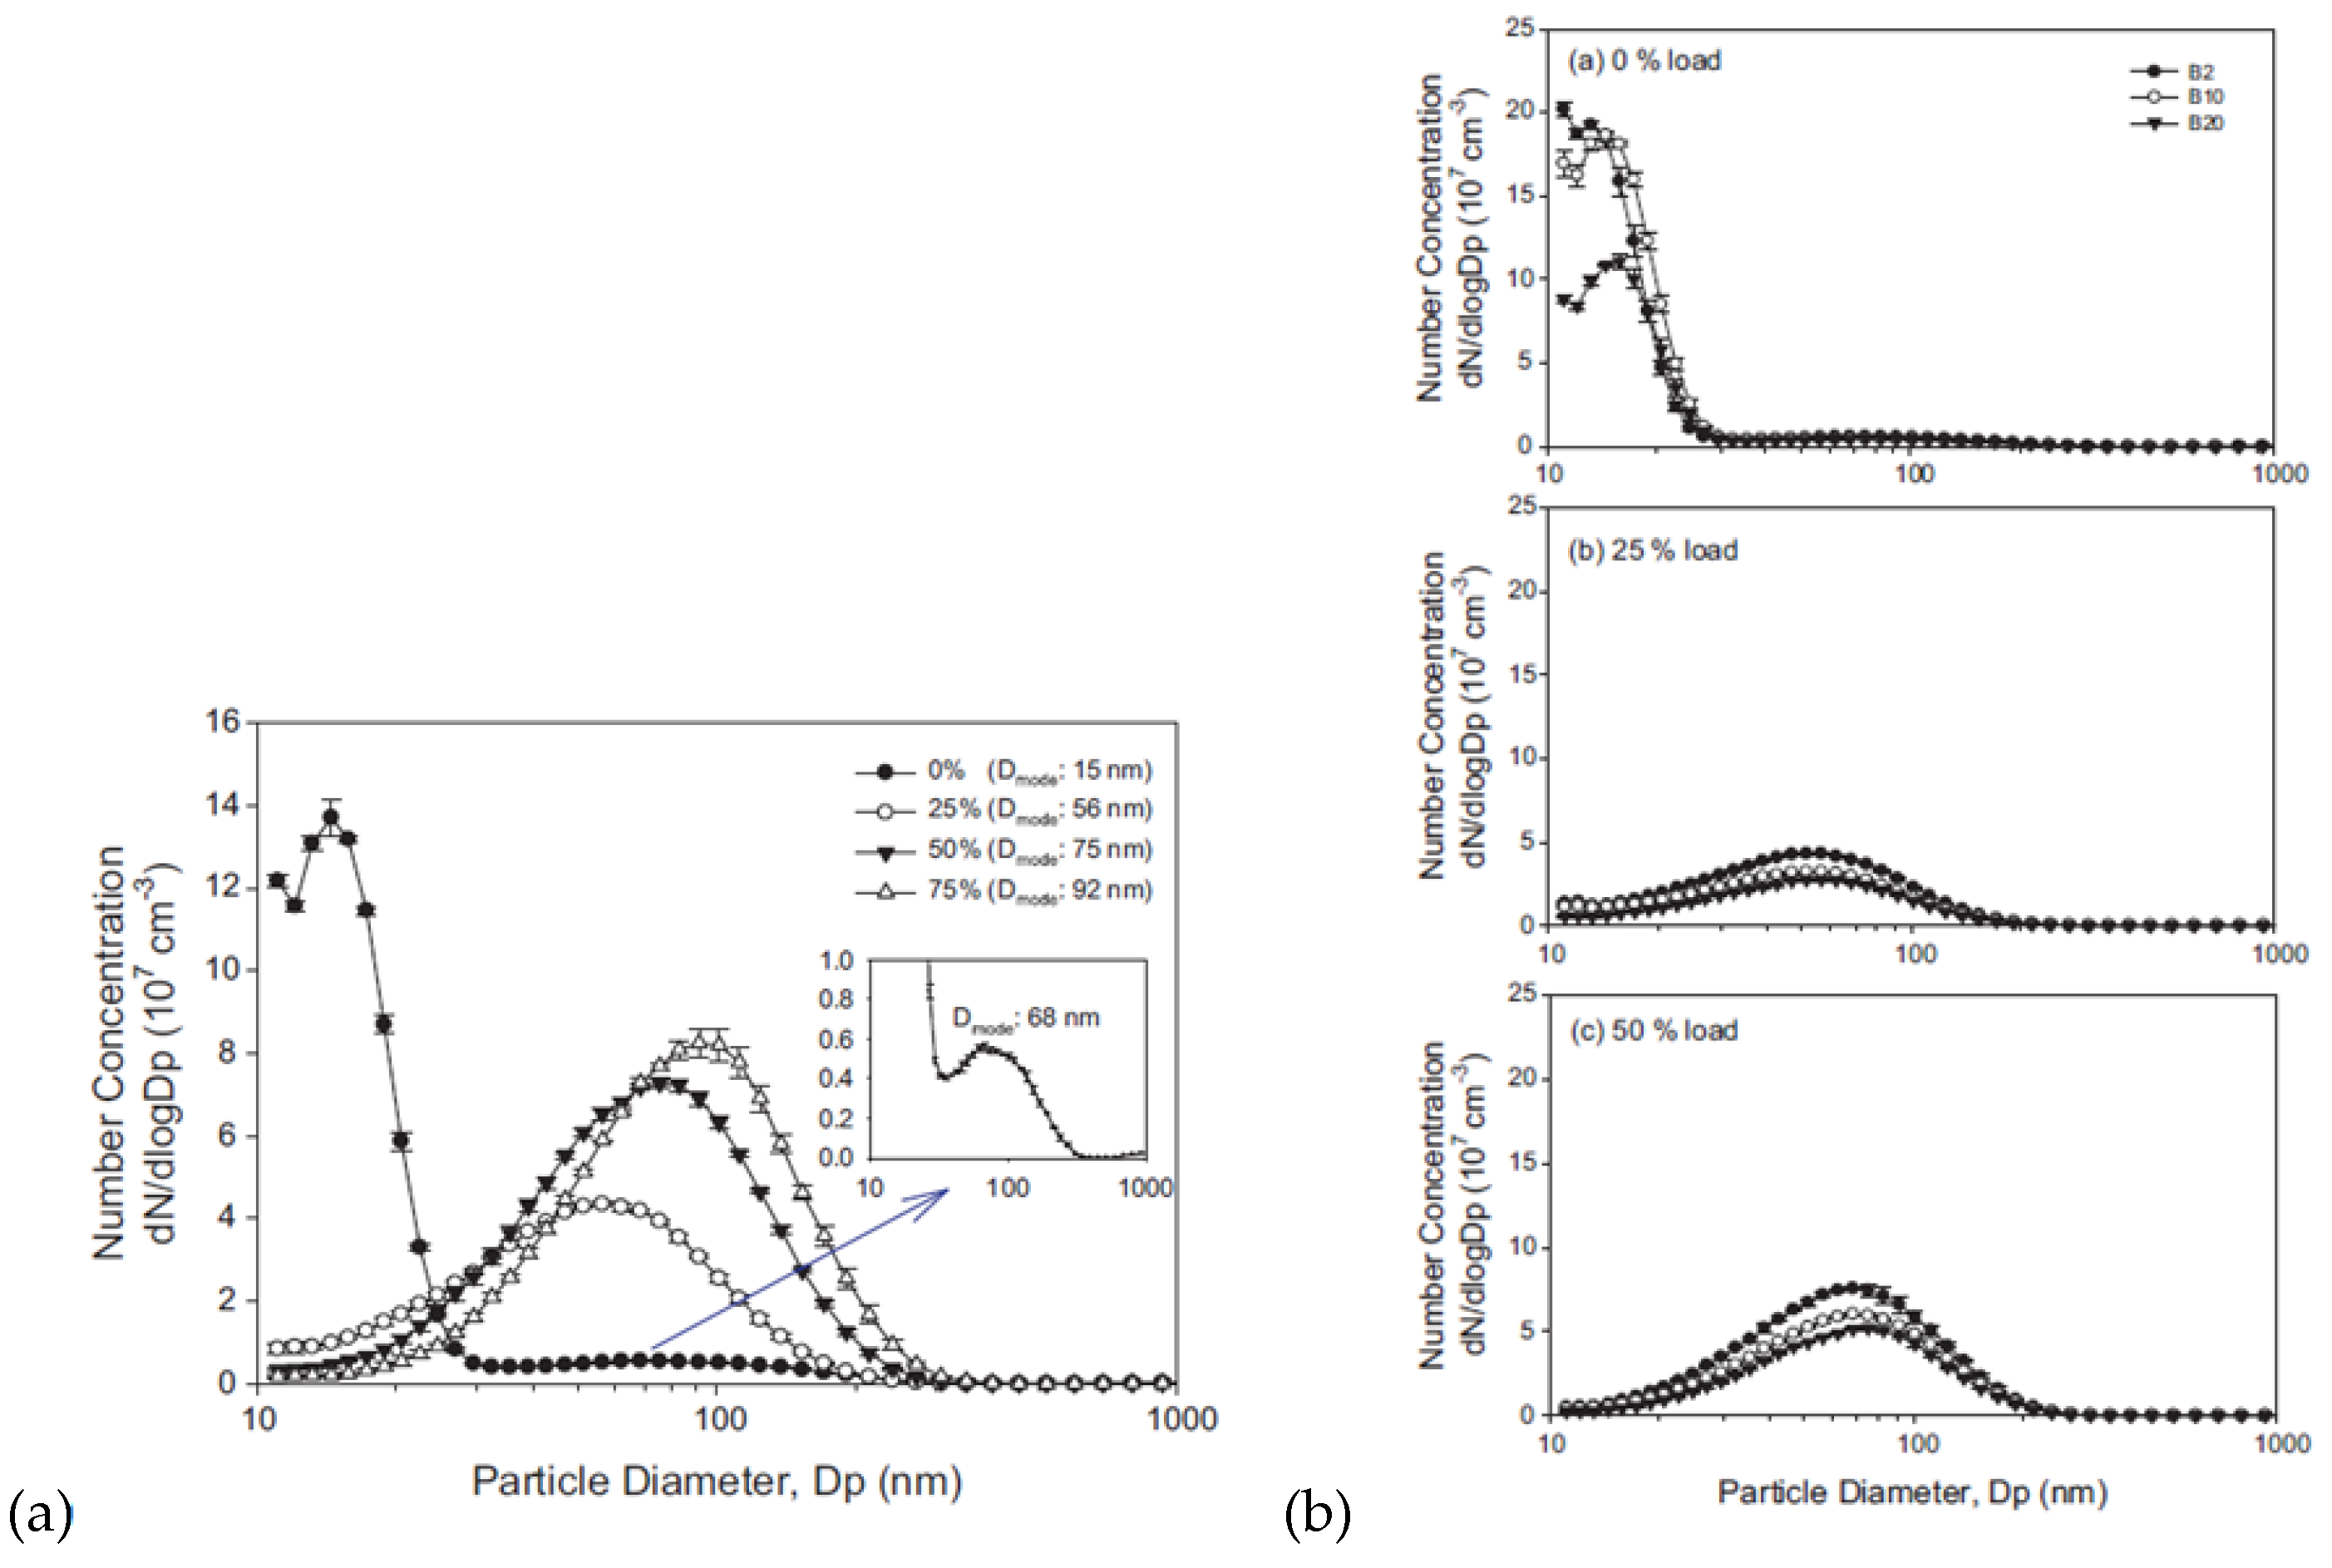 Impact of the Biofuels Burning on Particle Emissions from